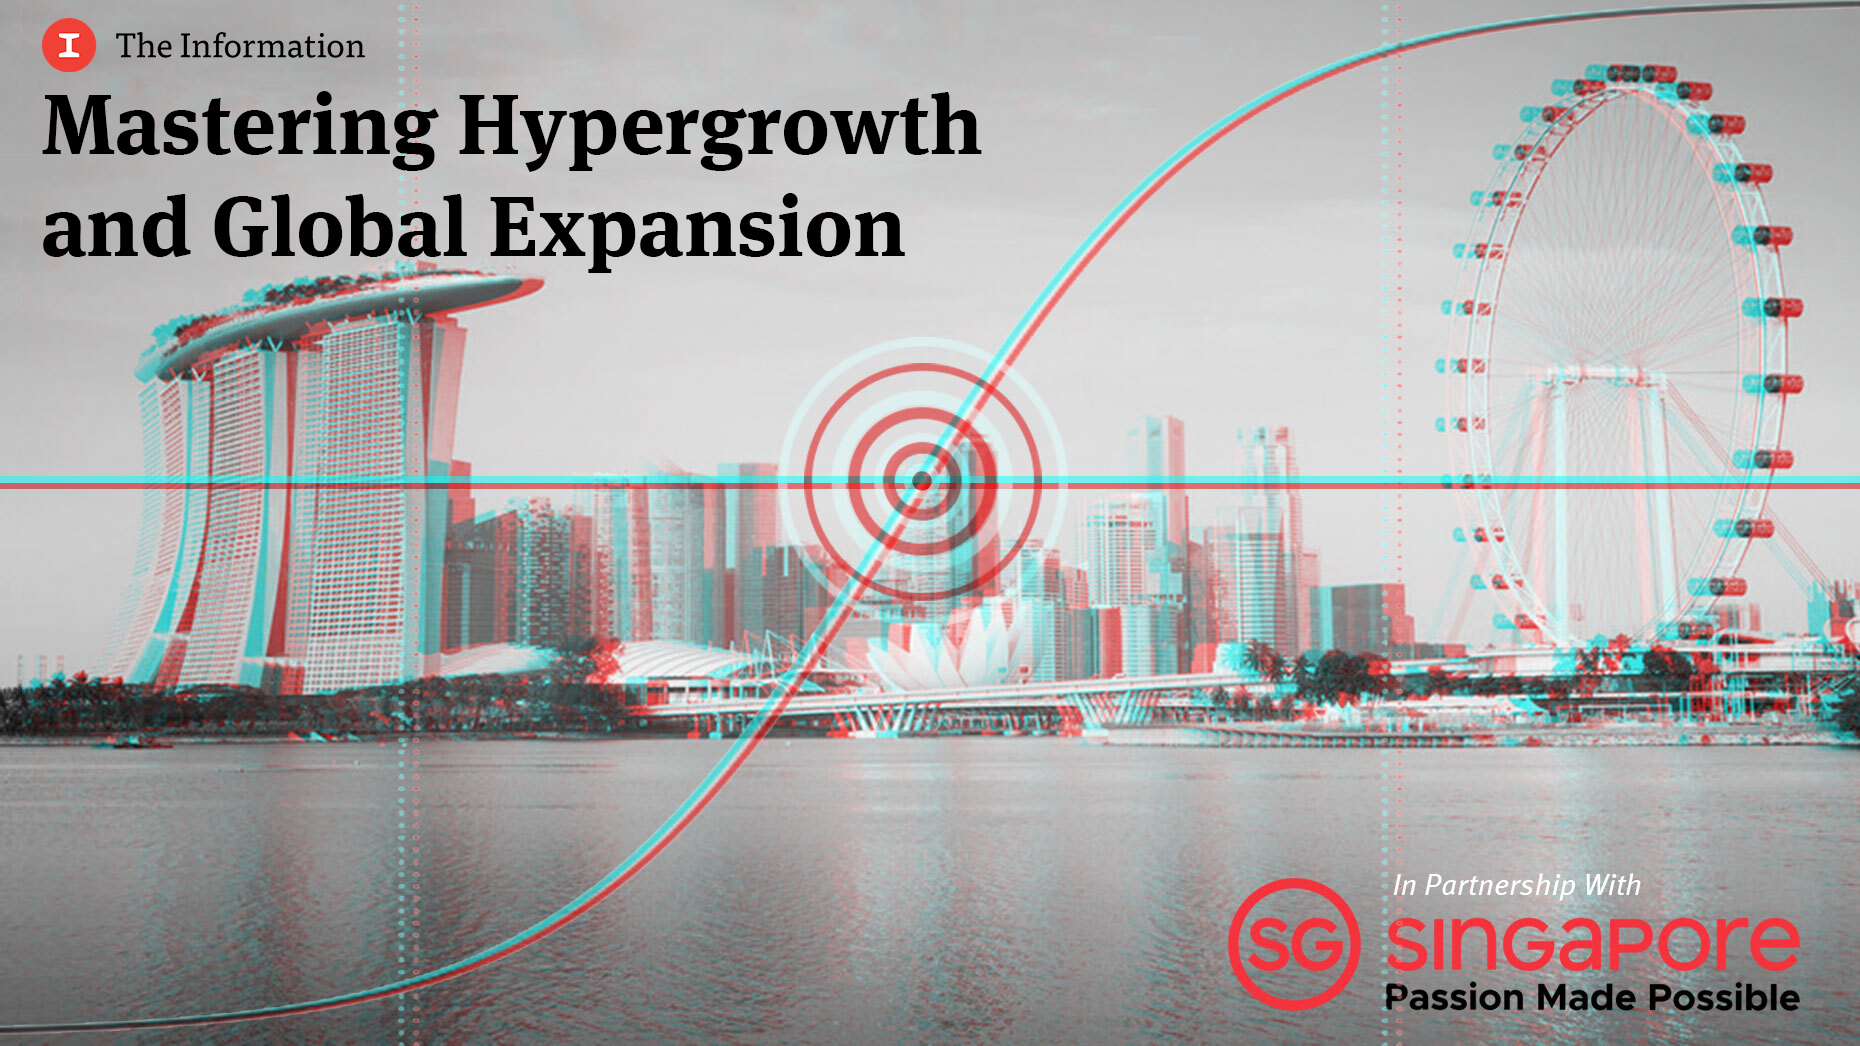 Mastering Hypergrowth and Global Expansion